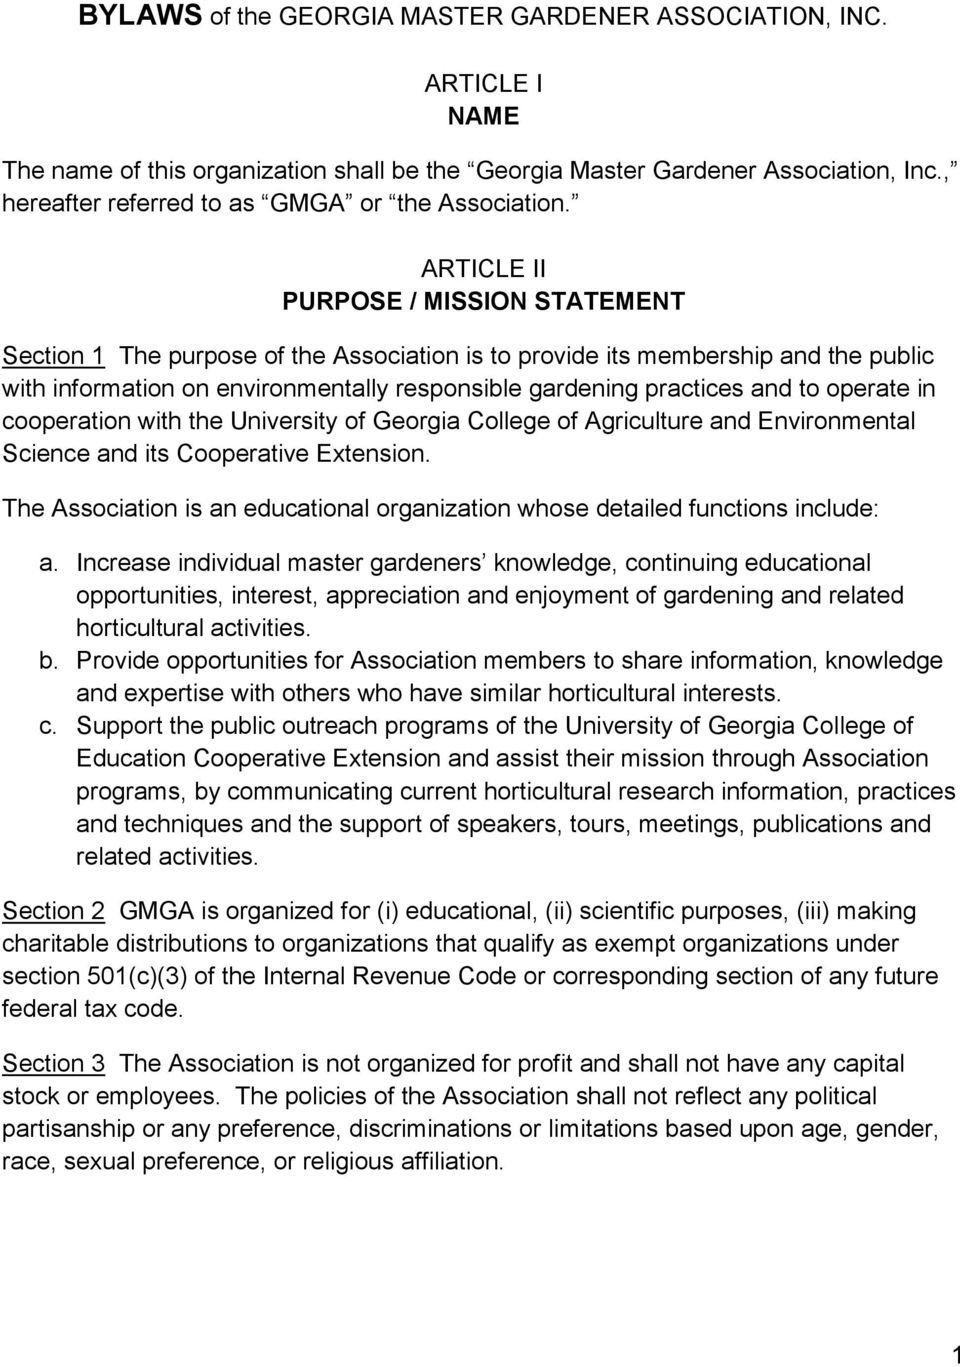 ARTICLE II PURPOSE / MISSION STATEMENT Section 1 The purpose of the Association is to provide its membership and the public with information on environmentally responsible gardening practices and to